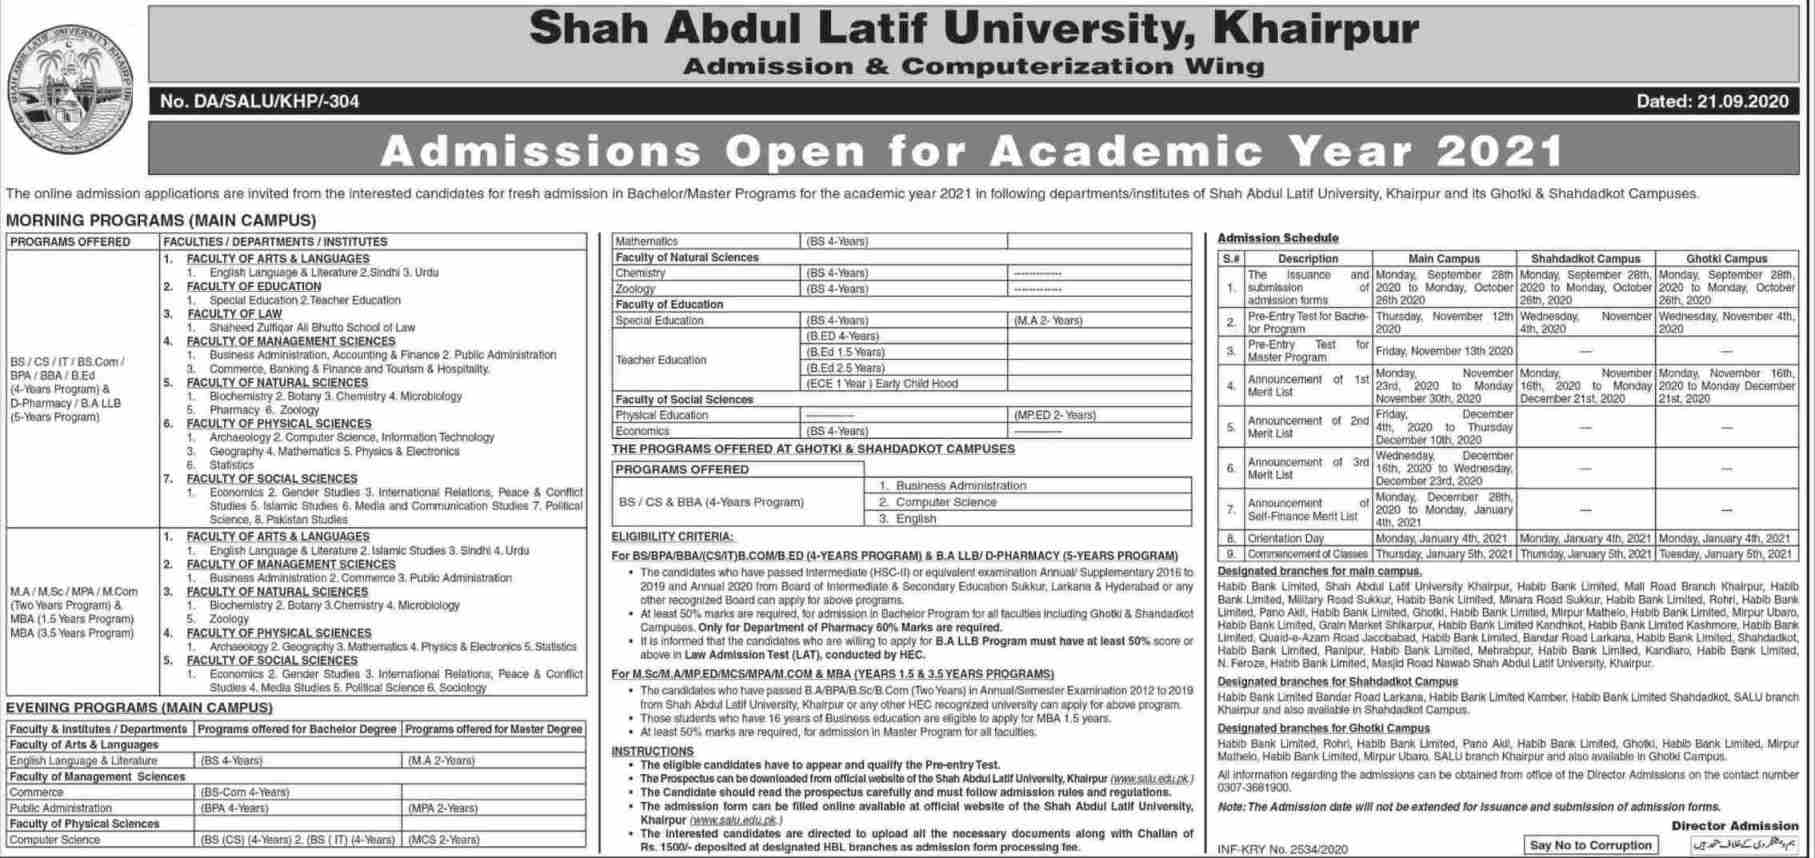 dates of the admission